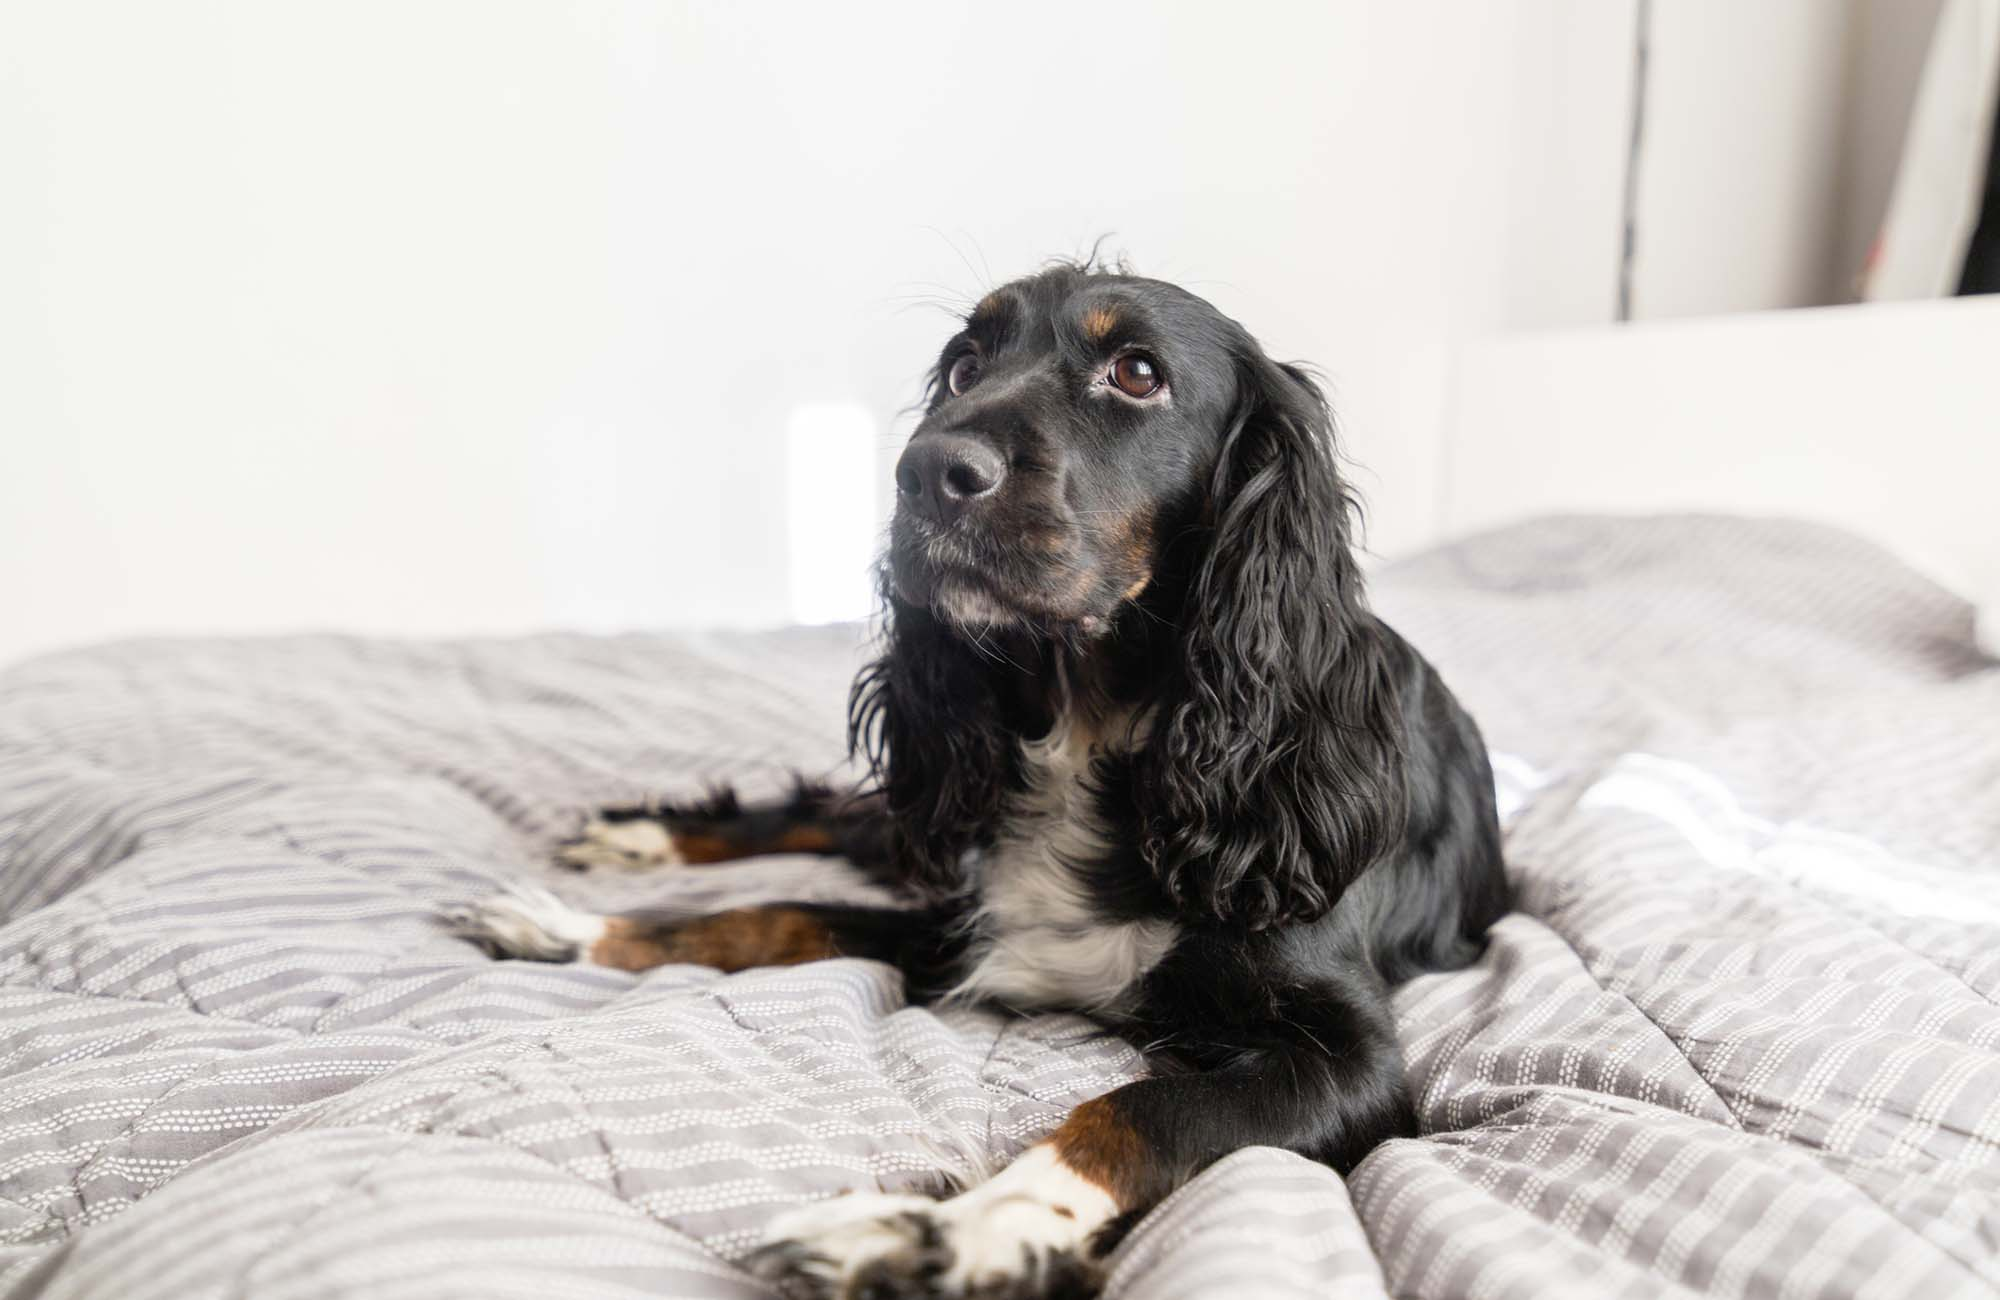 Black Spaniel dog on bed